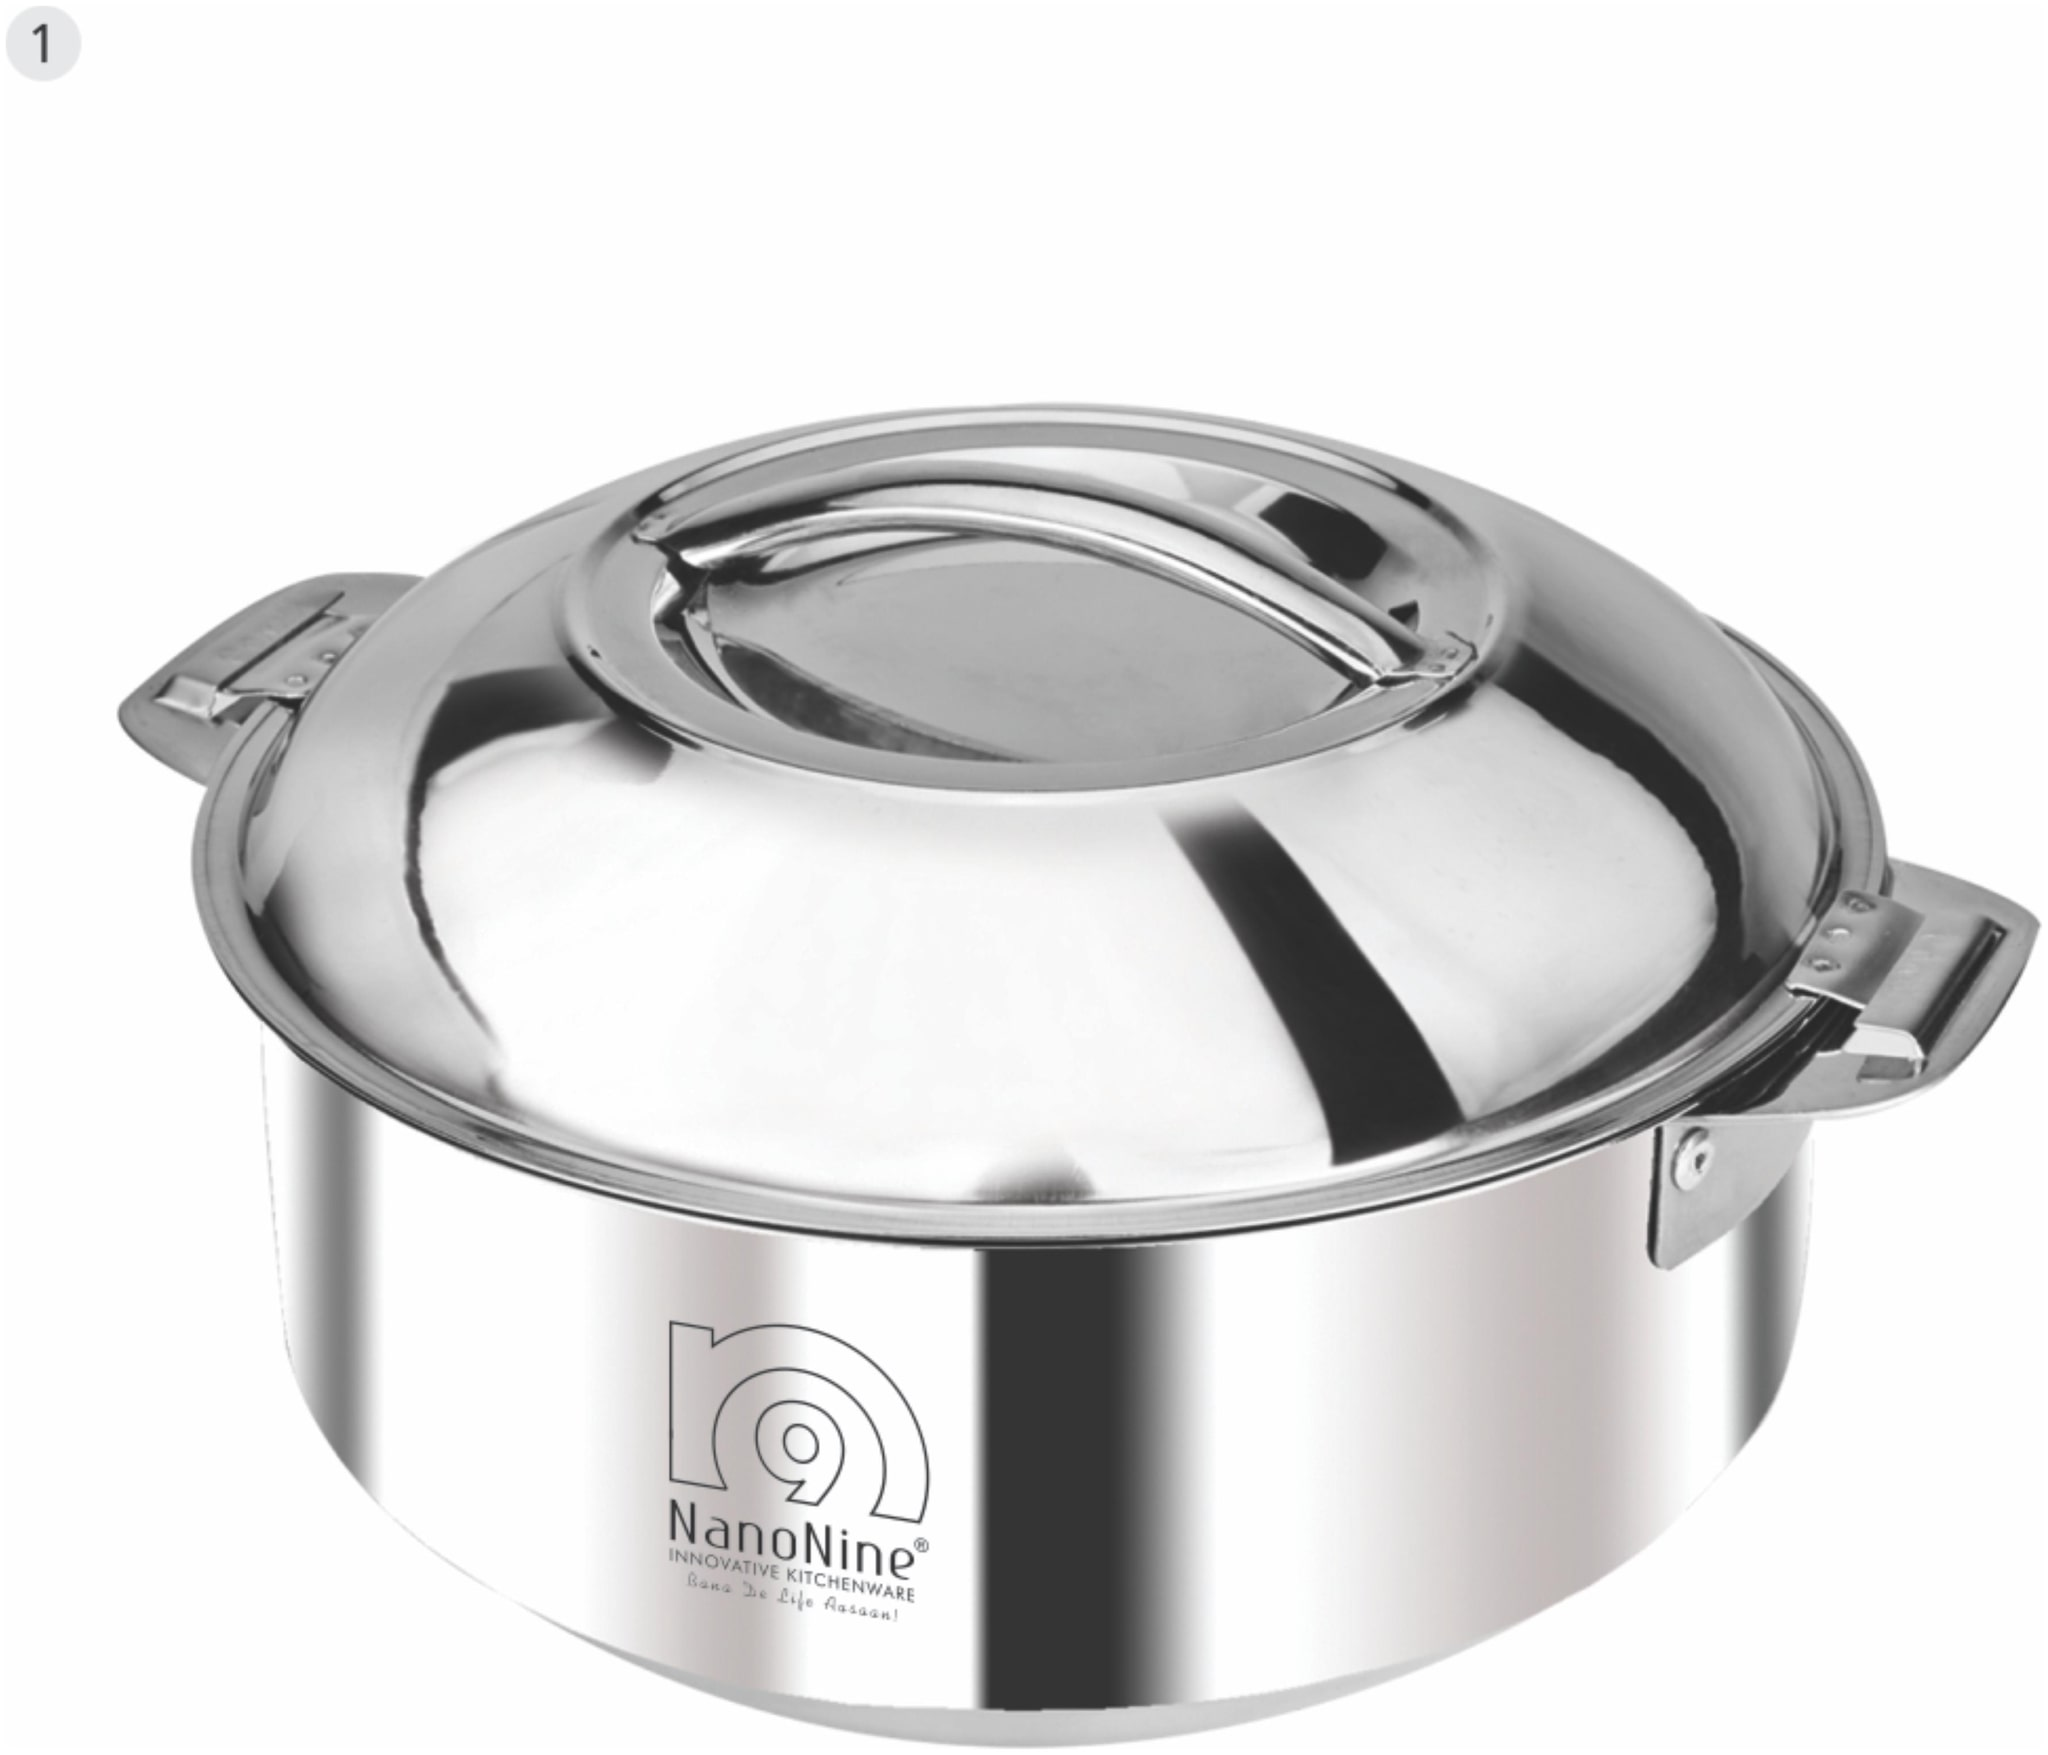 NanoNine Hot Chef Double Wall Insulated Hot Pot Stainless Steel Casserole with Steel Lid, 1.9 L, 1 pc by Smart Kitchen